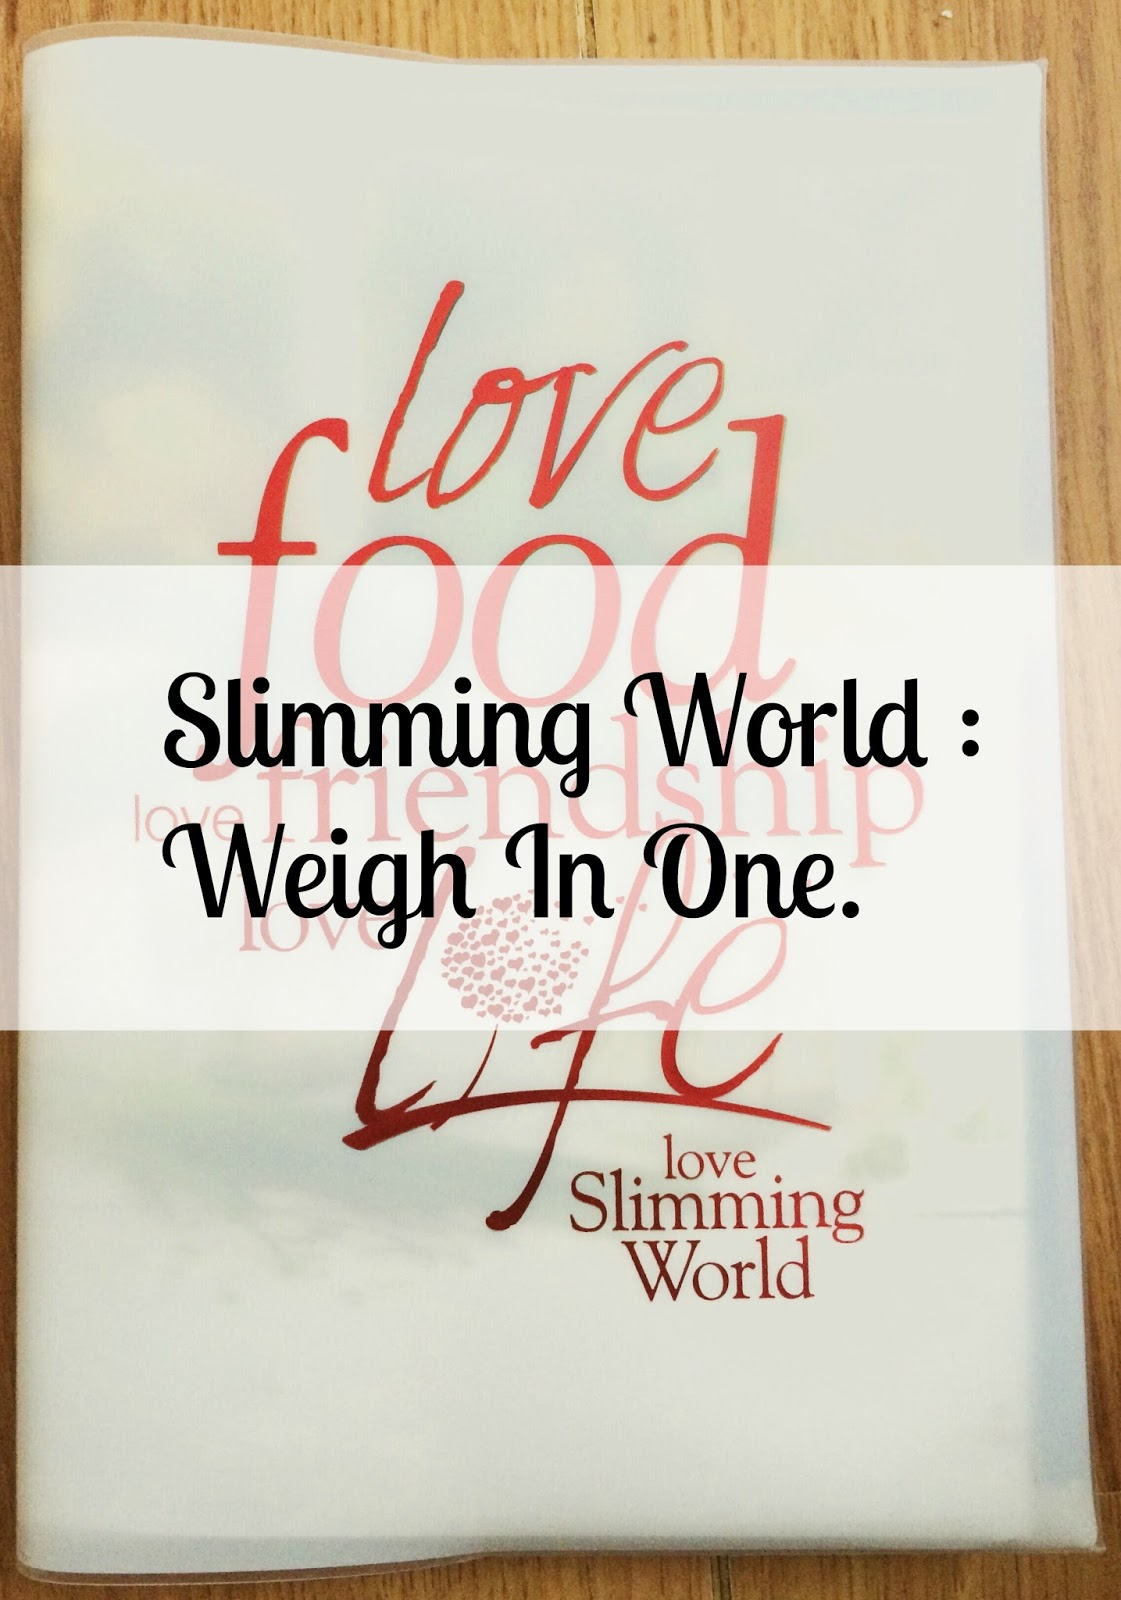 Slimming World Weigh In One | Newcastle Family Life